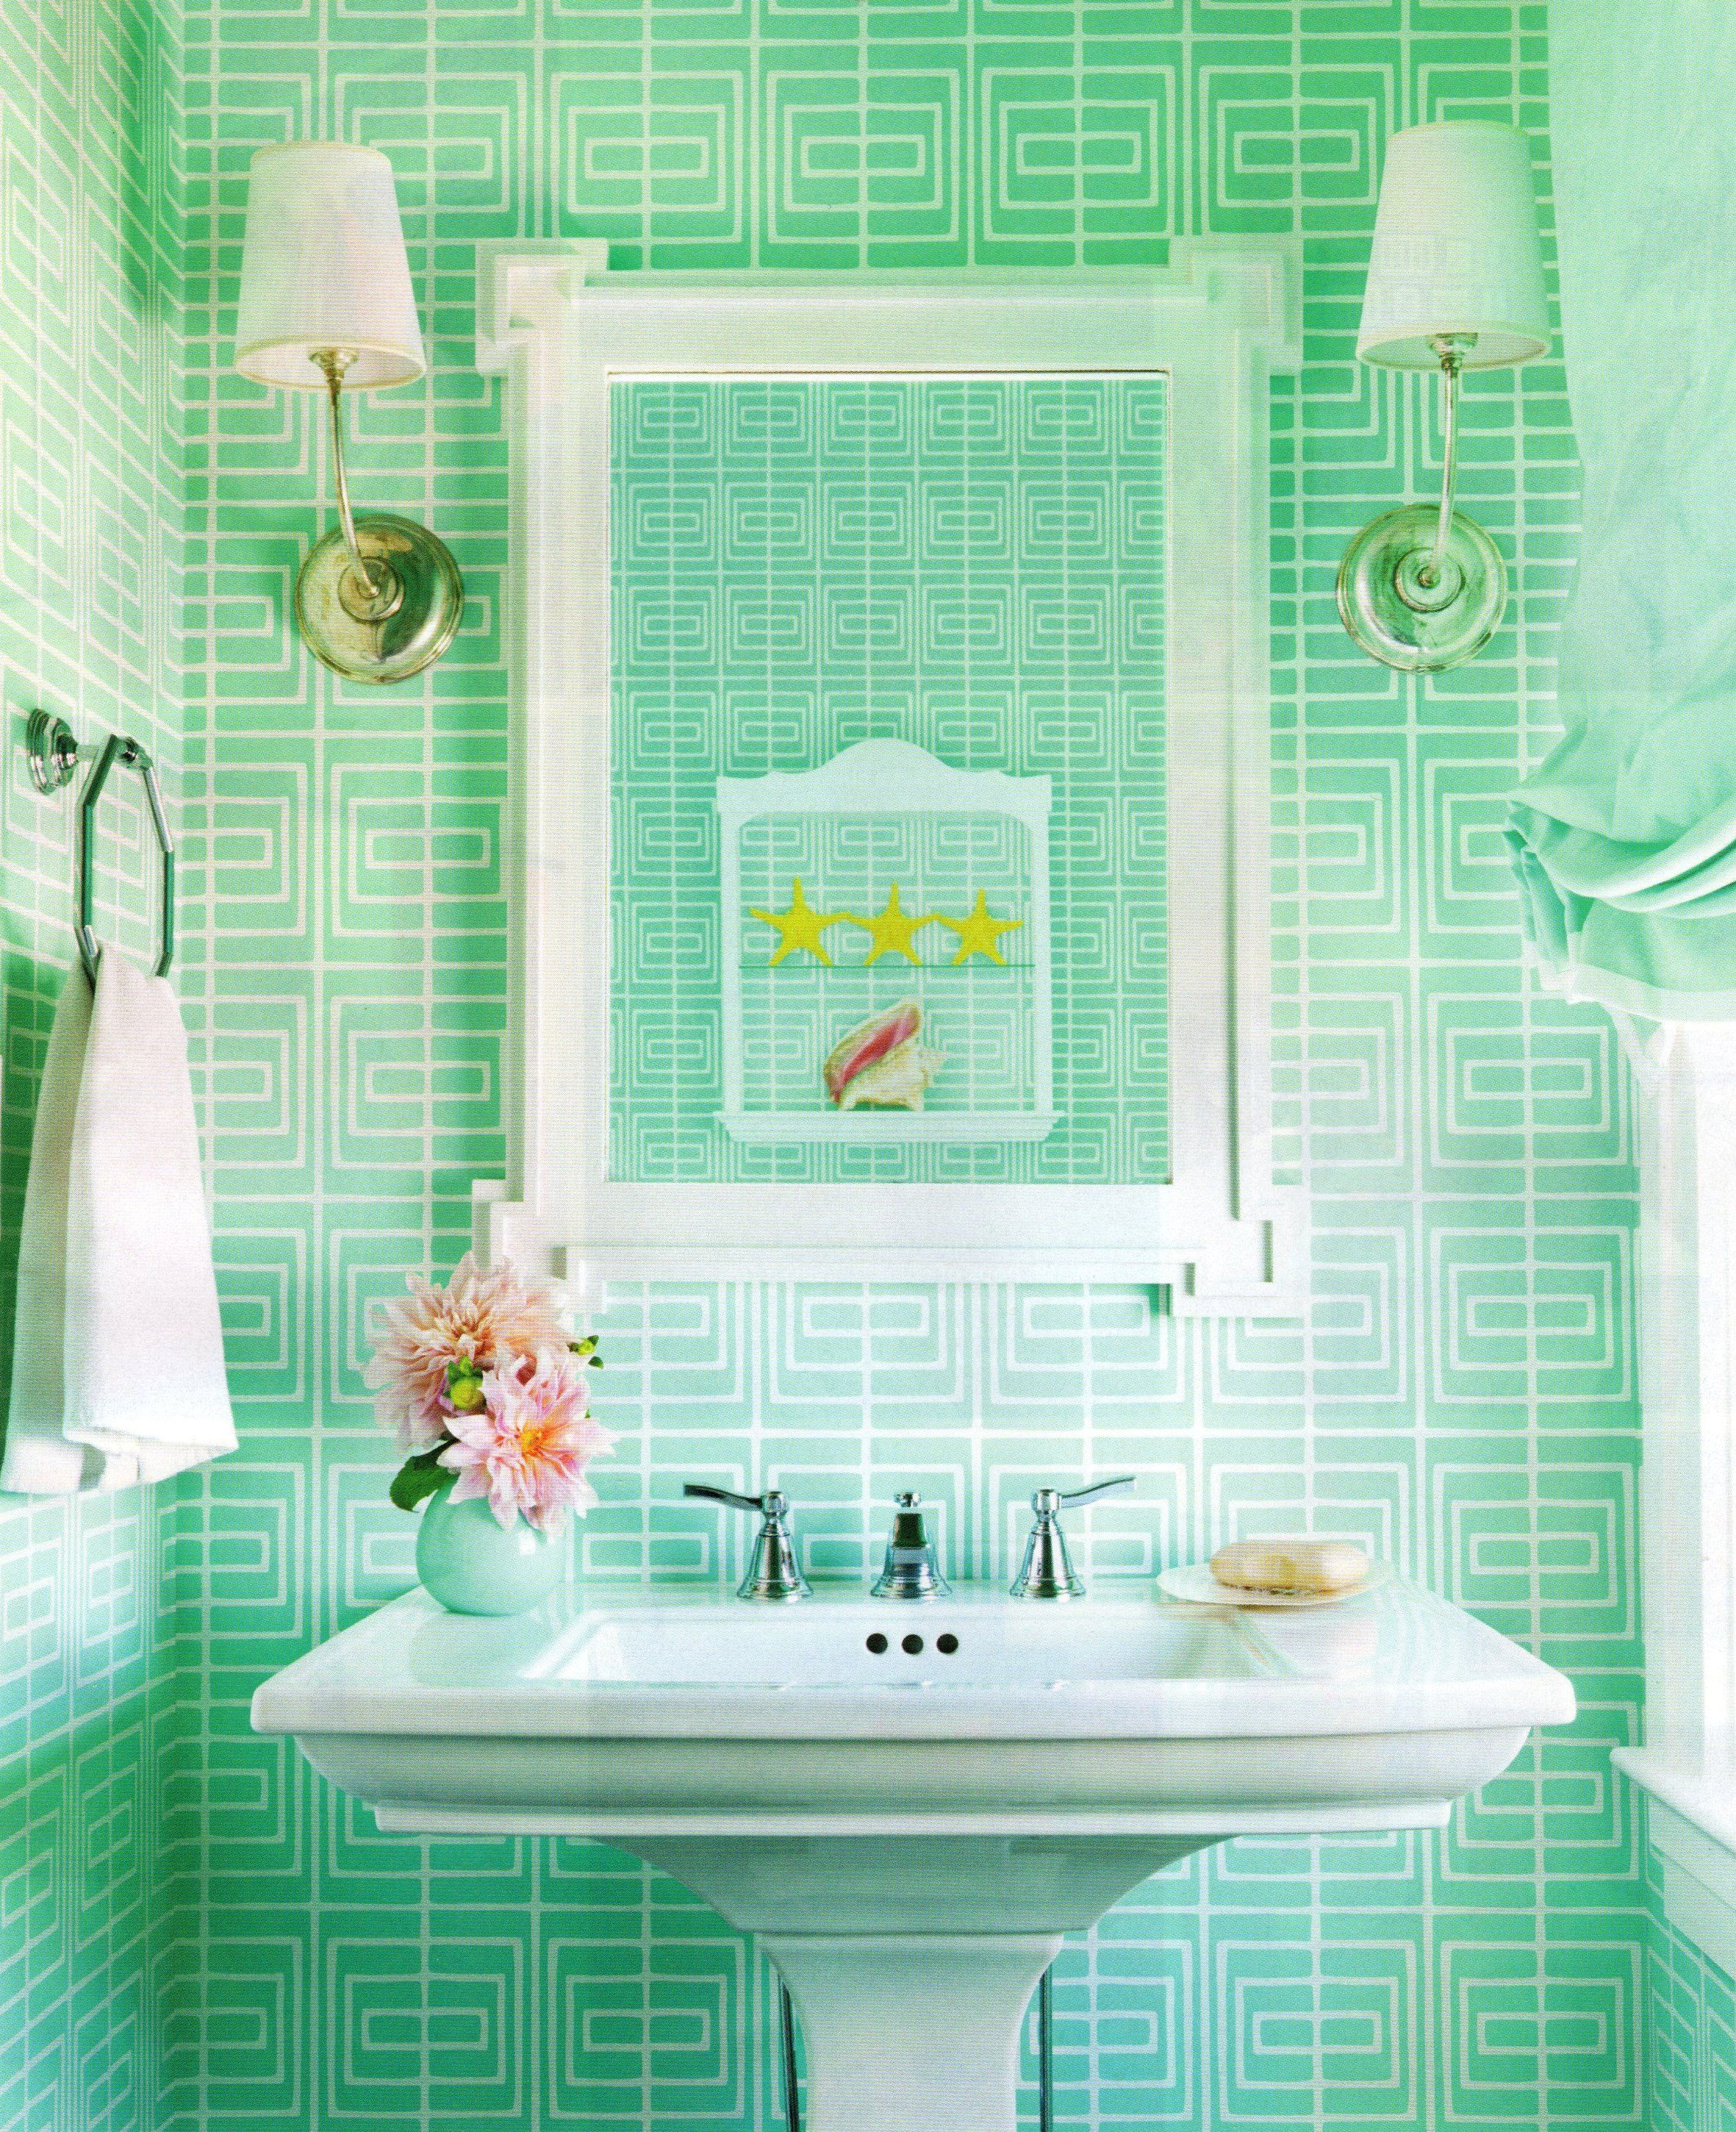 Bright colored bathrooms - Bright Green Bathroom Tiles Bring A Pretty Pop Of Fun Colors Bathrooms